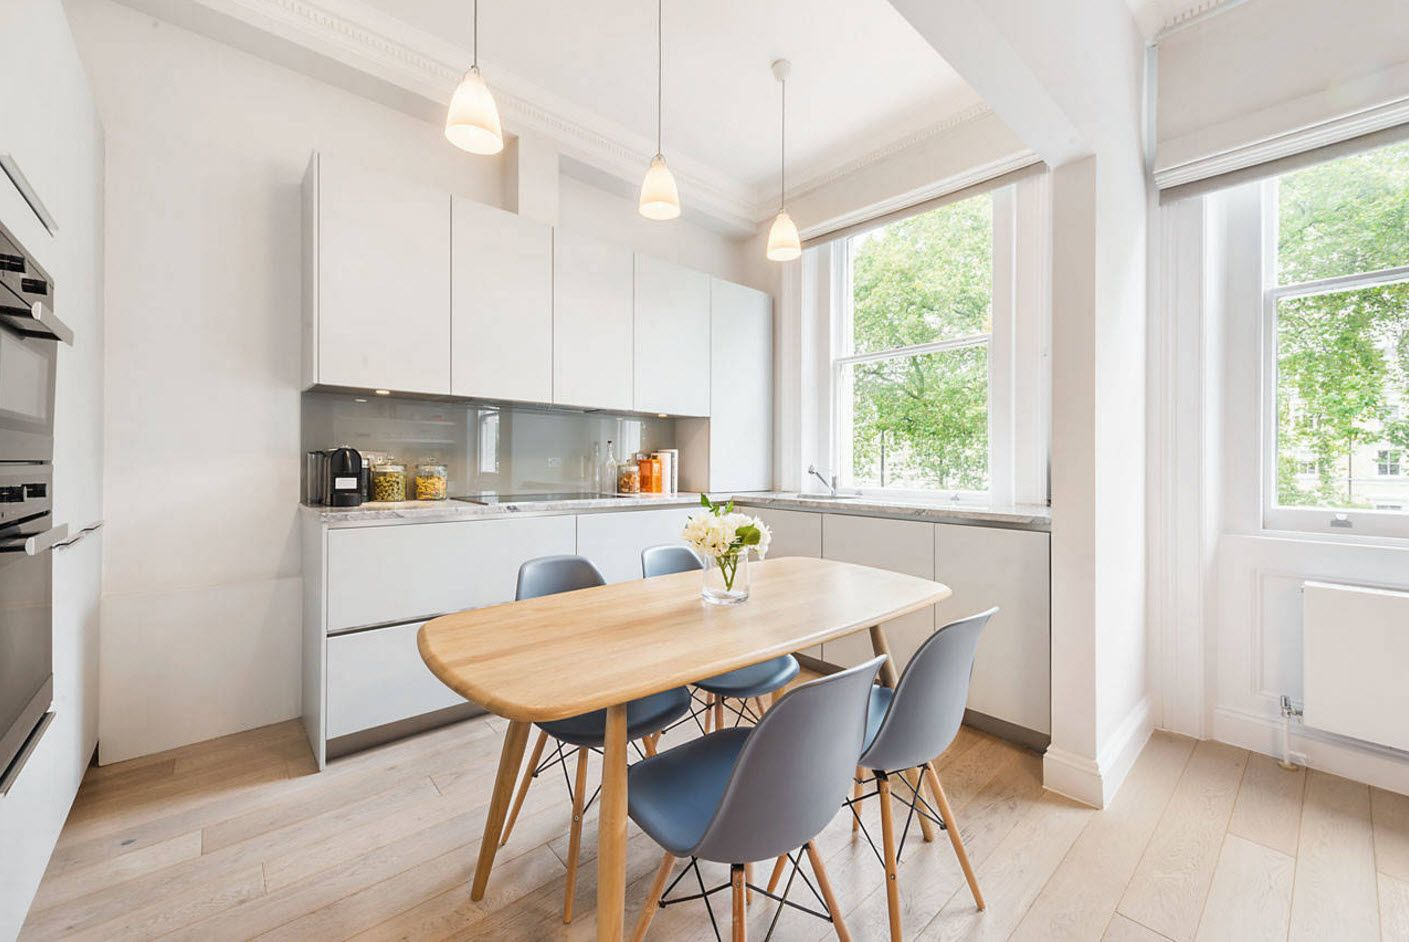 100+ Photo Design Ideas of Modern, Comfortable IKEA Kitchens. White setting and wooden table with floor